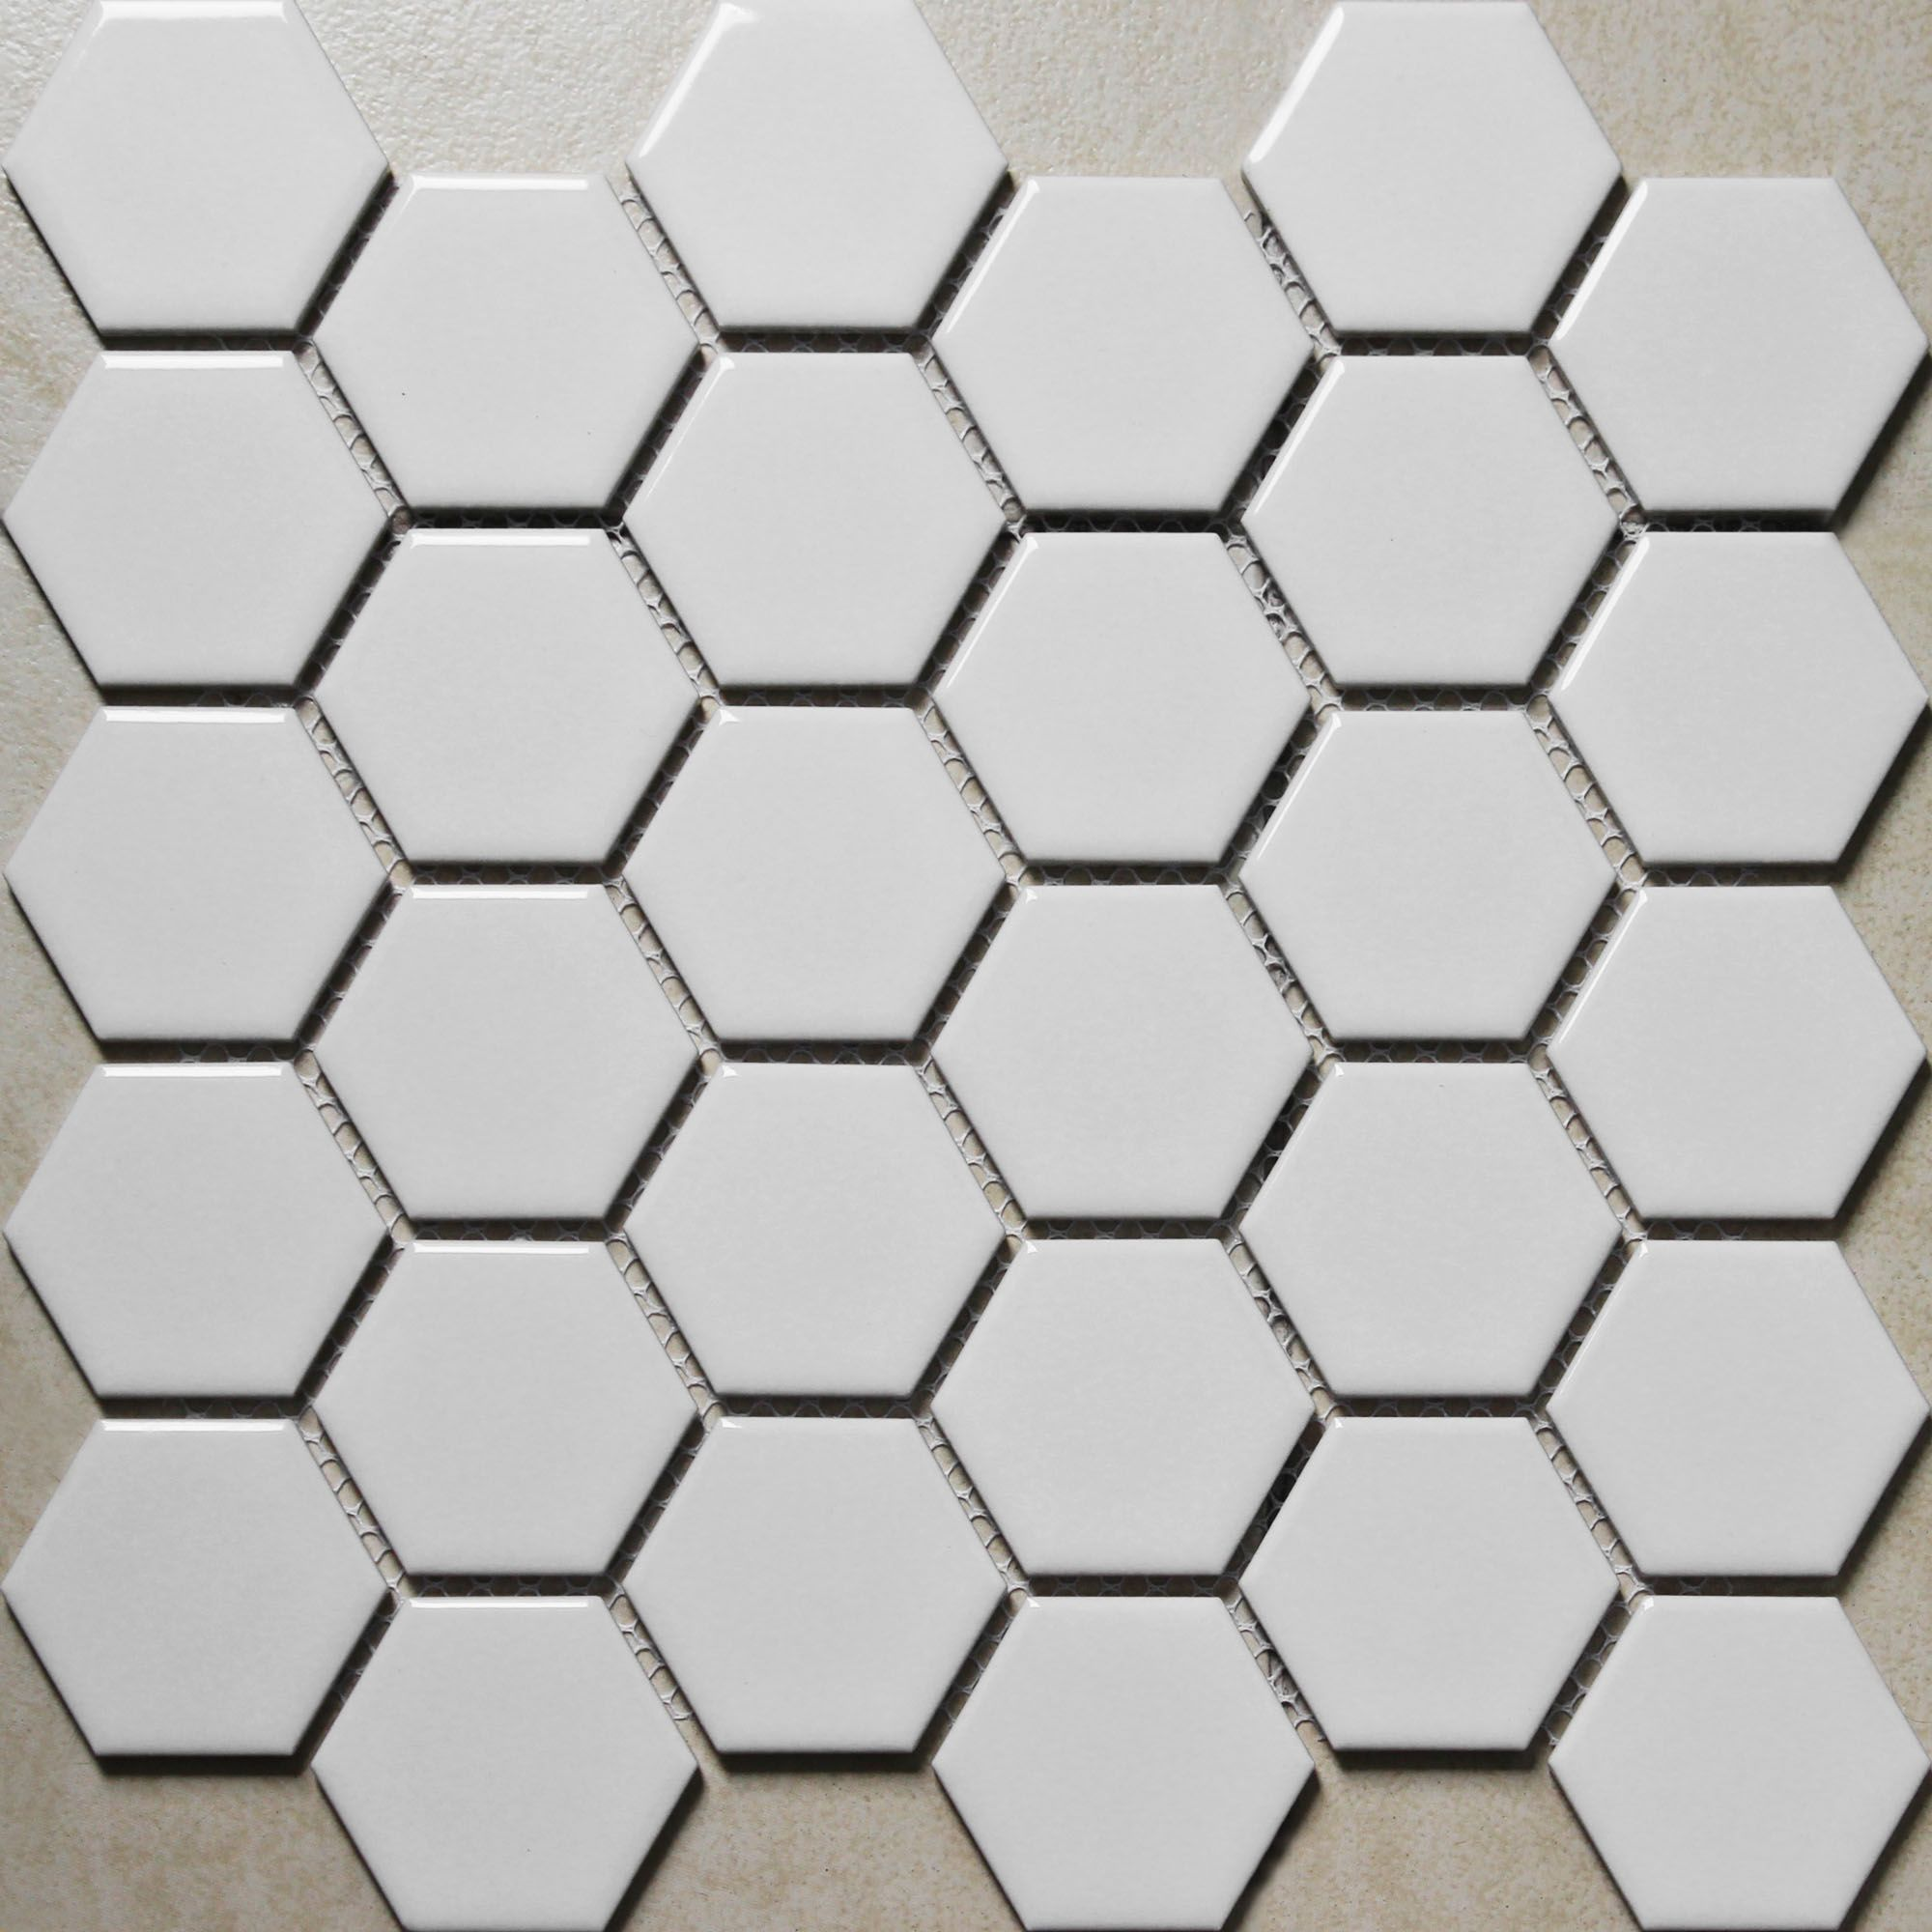 blanc hexagonal grande mosa que de c ramique carreaux de sol de salle de bains carrelage en. Black Bedroom Furniture Sets. Home Design Ideas